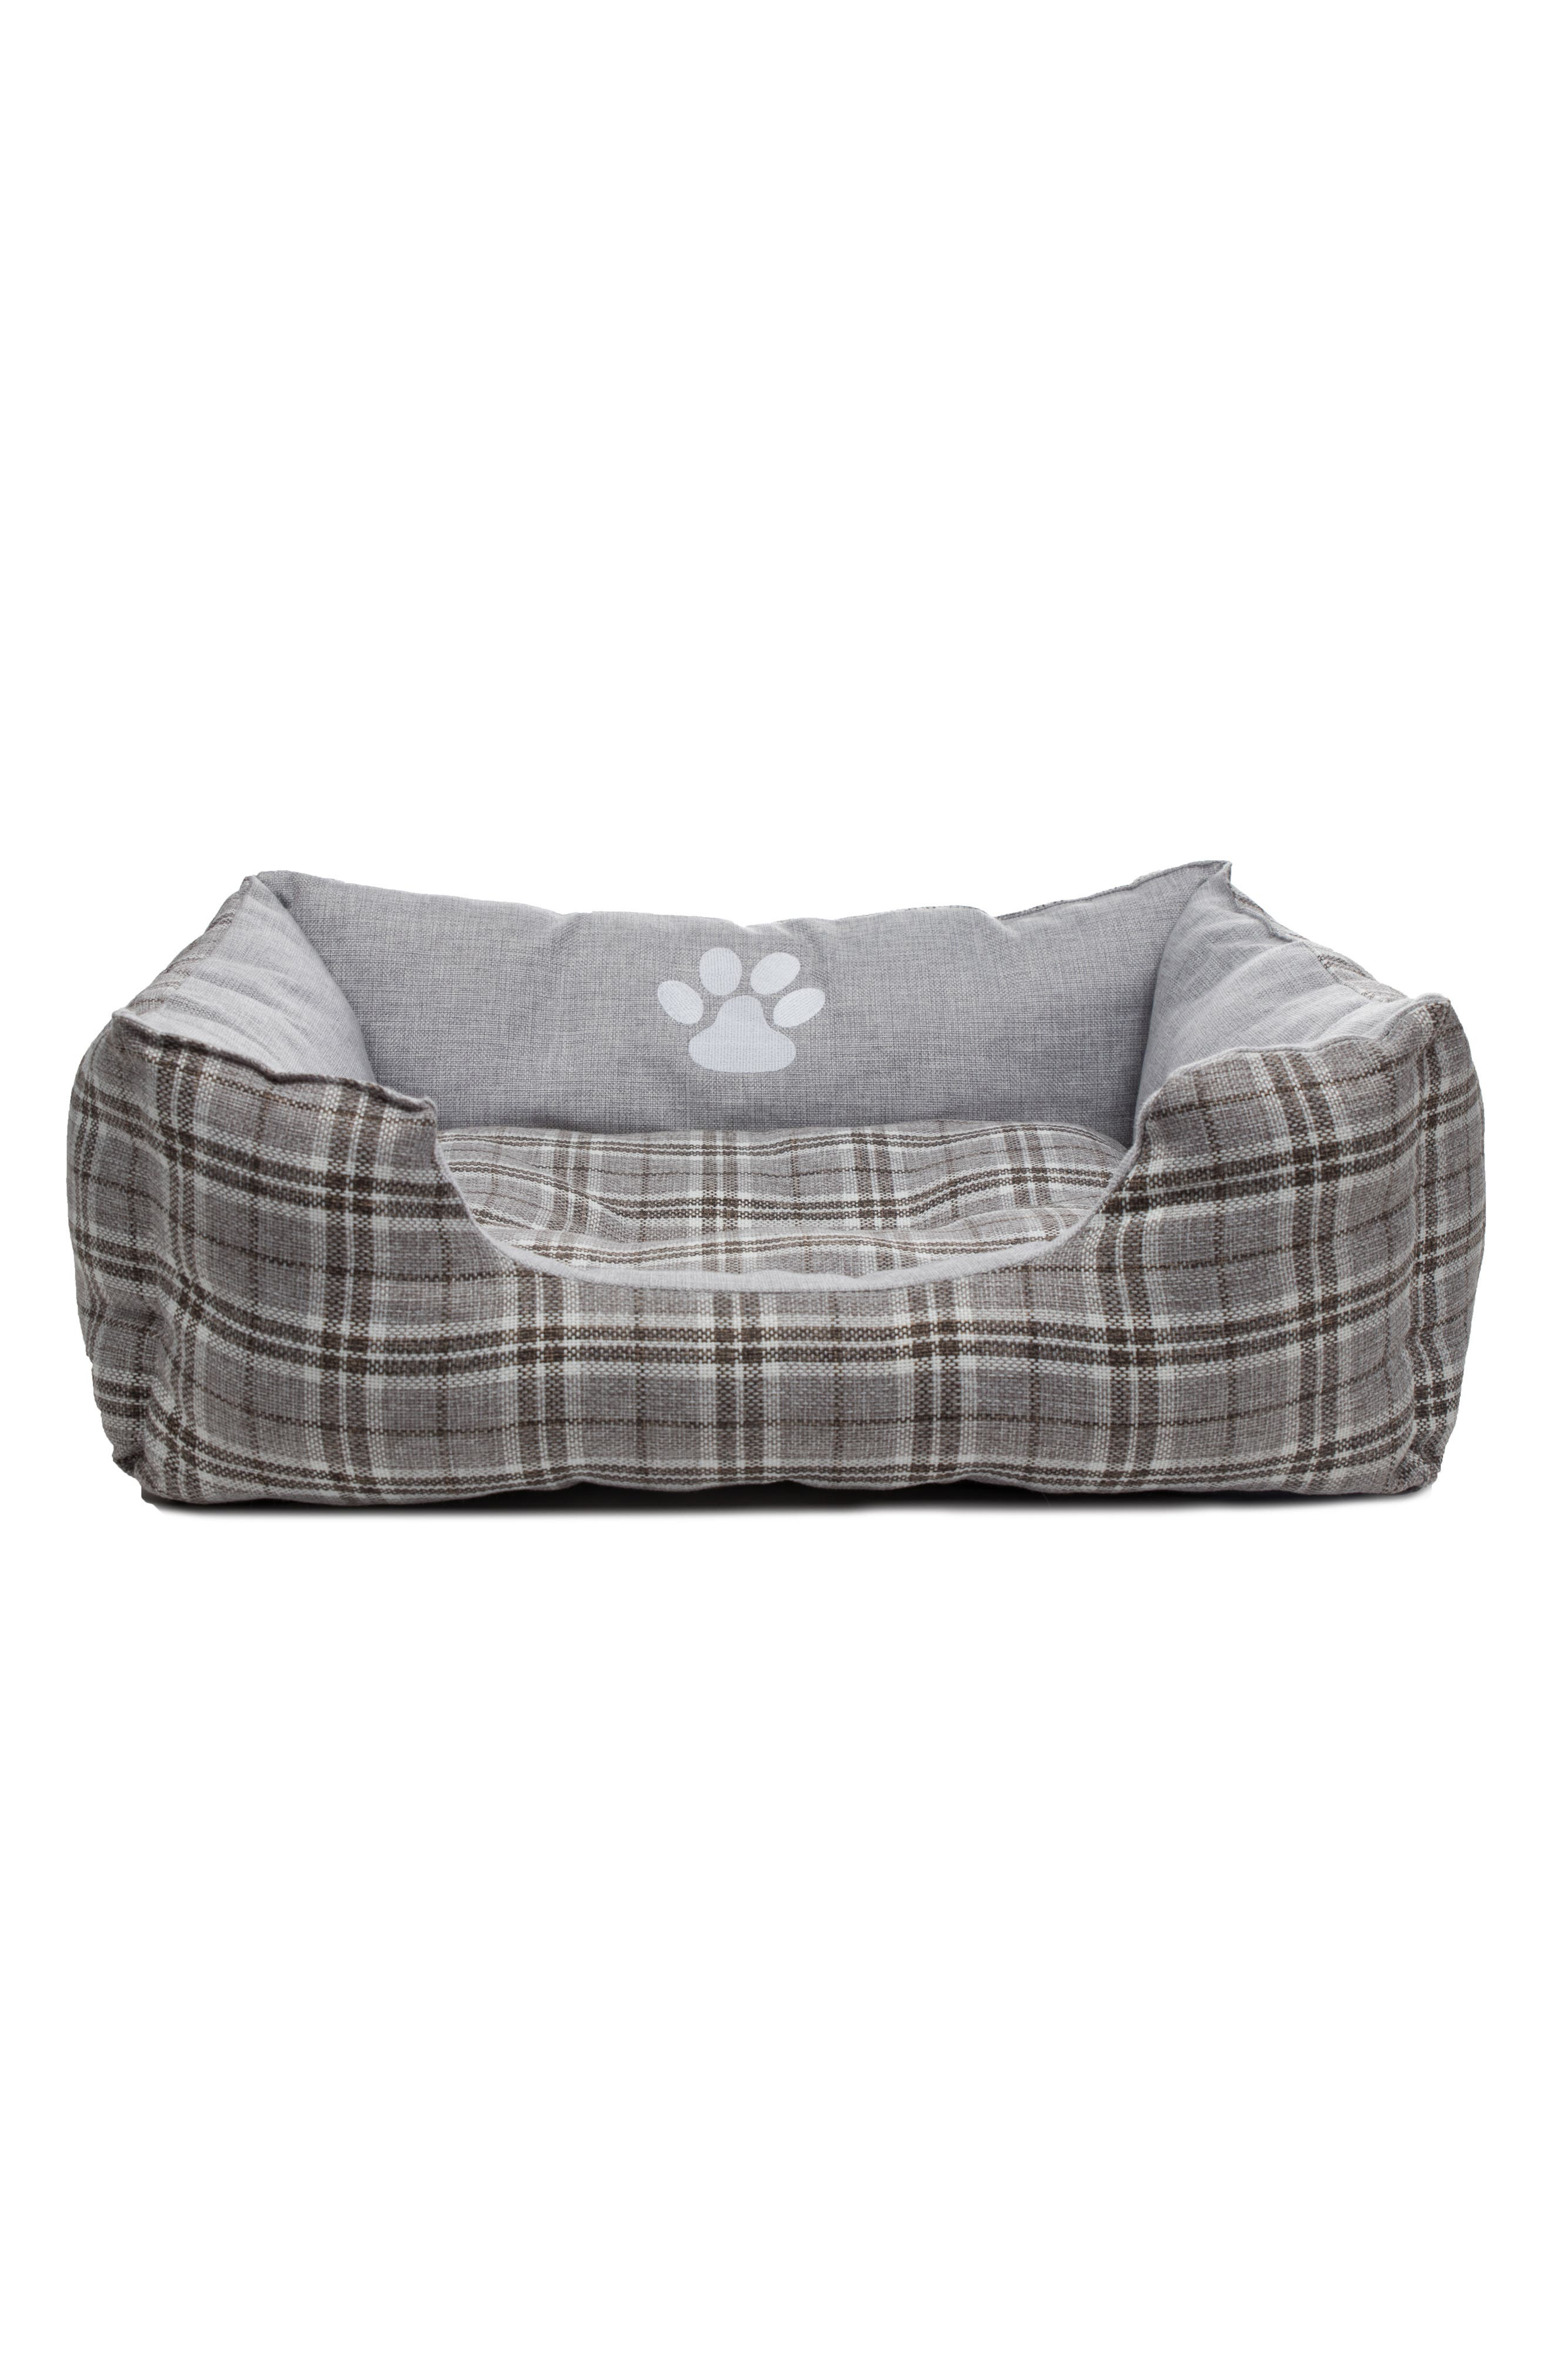 Harlee Large Square Pet Bed,                             Main thumbnail 1, color,                             020